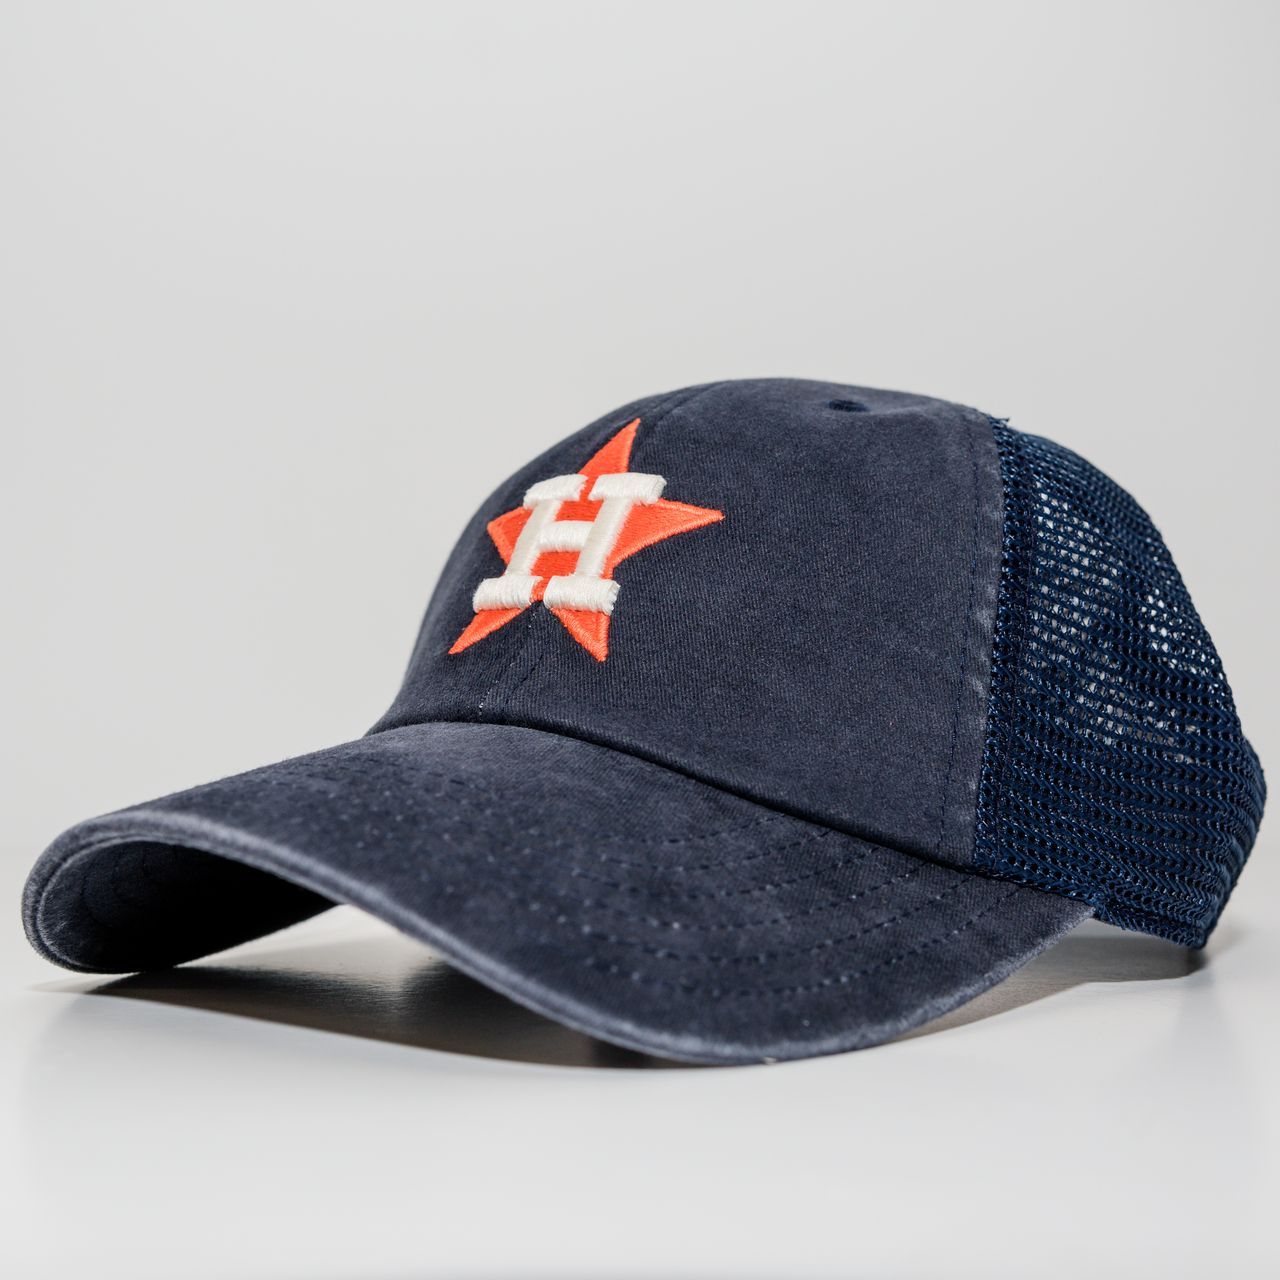 Houston Astros Raglan Bones Cap